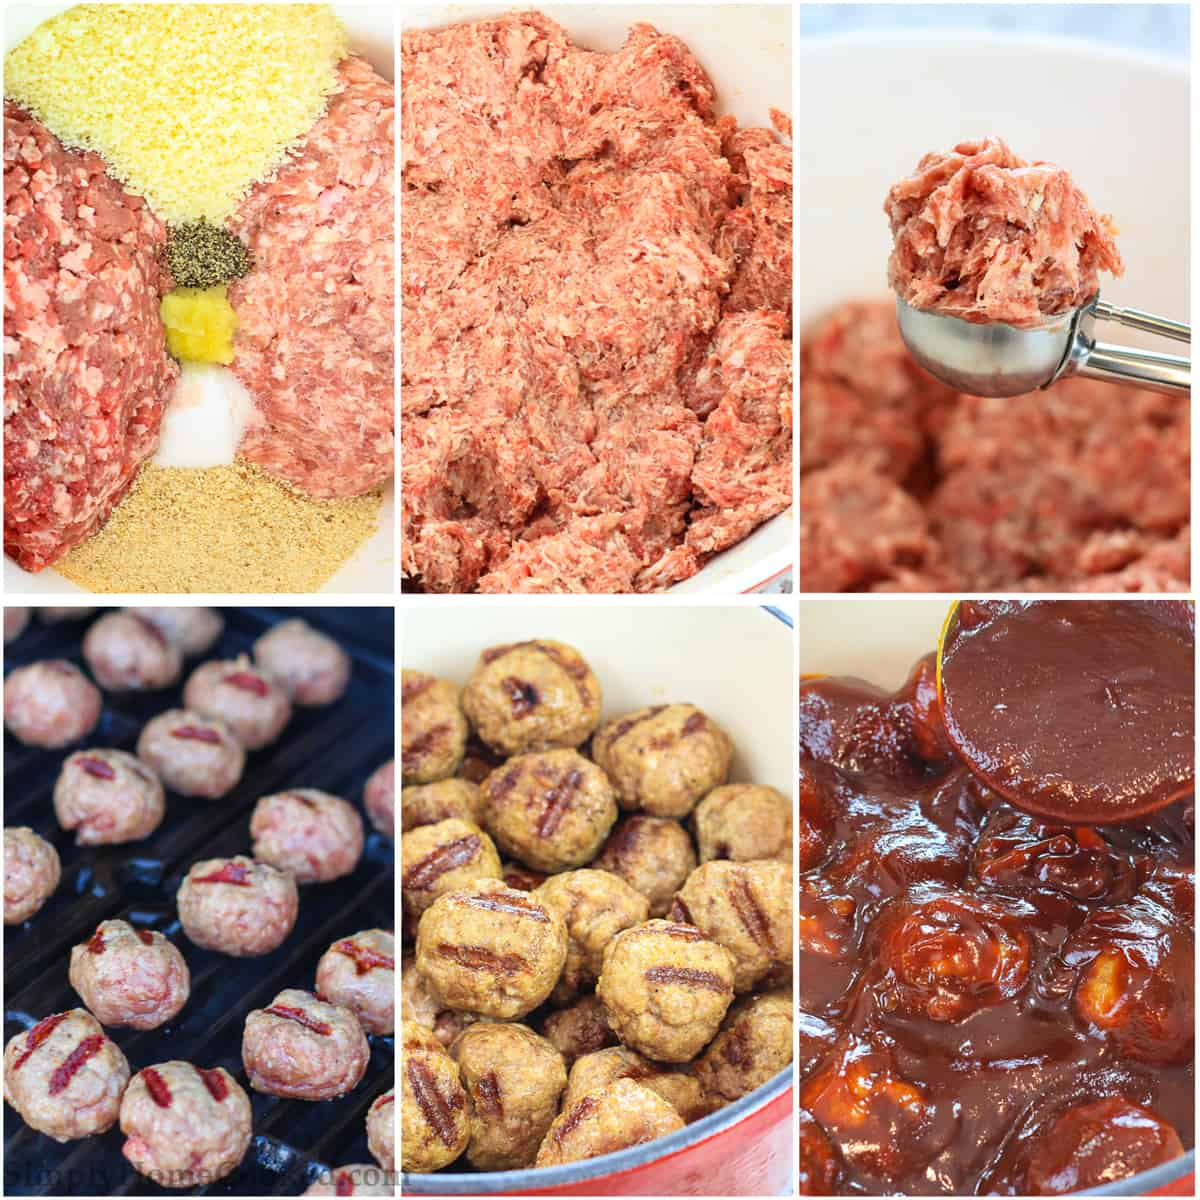 A picture collage of the steps of preparing the meatball mixture, cooking the barbecue meatballs and then simmering in the homemade barbecue sauce before serving